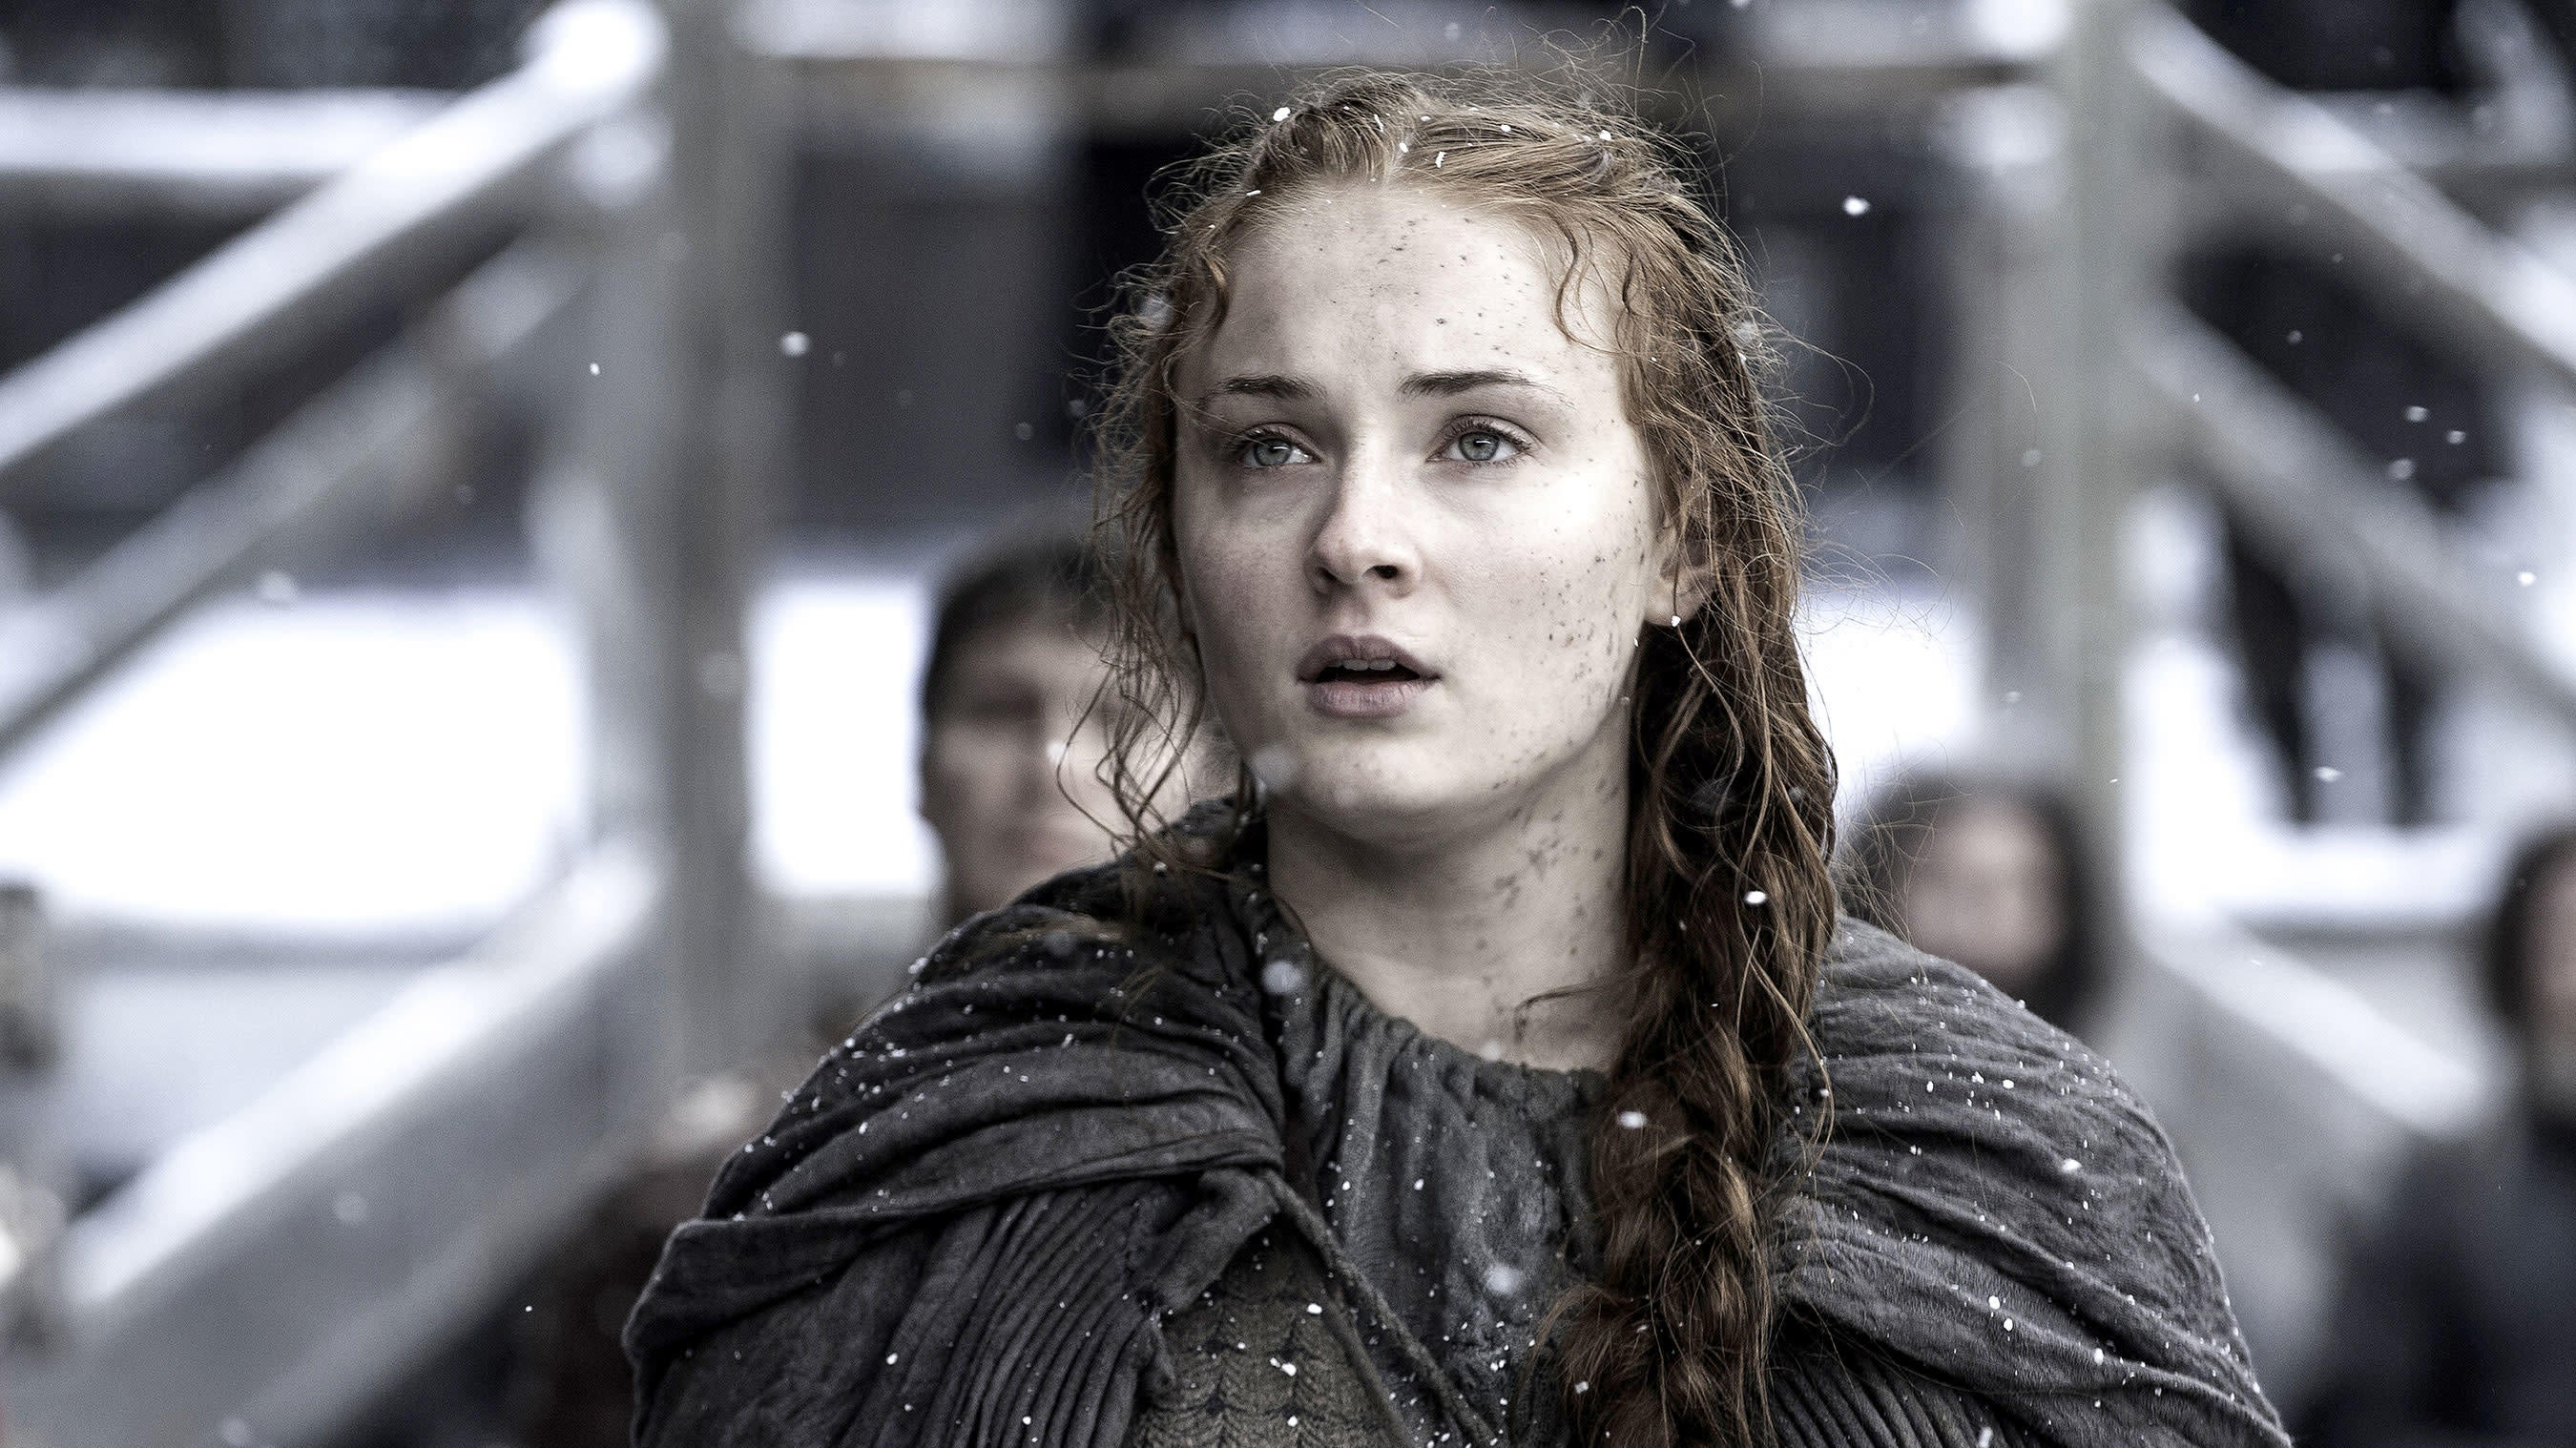 Sophie Turner Has Some Insight On That Game Of Thrones Coffee Cup Goof